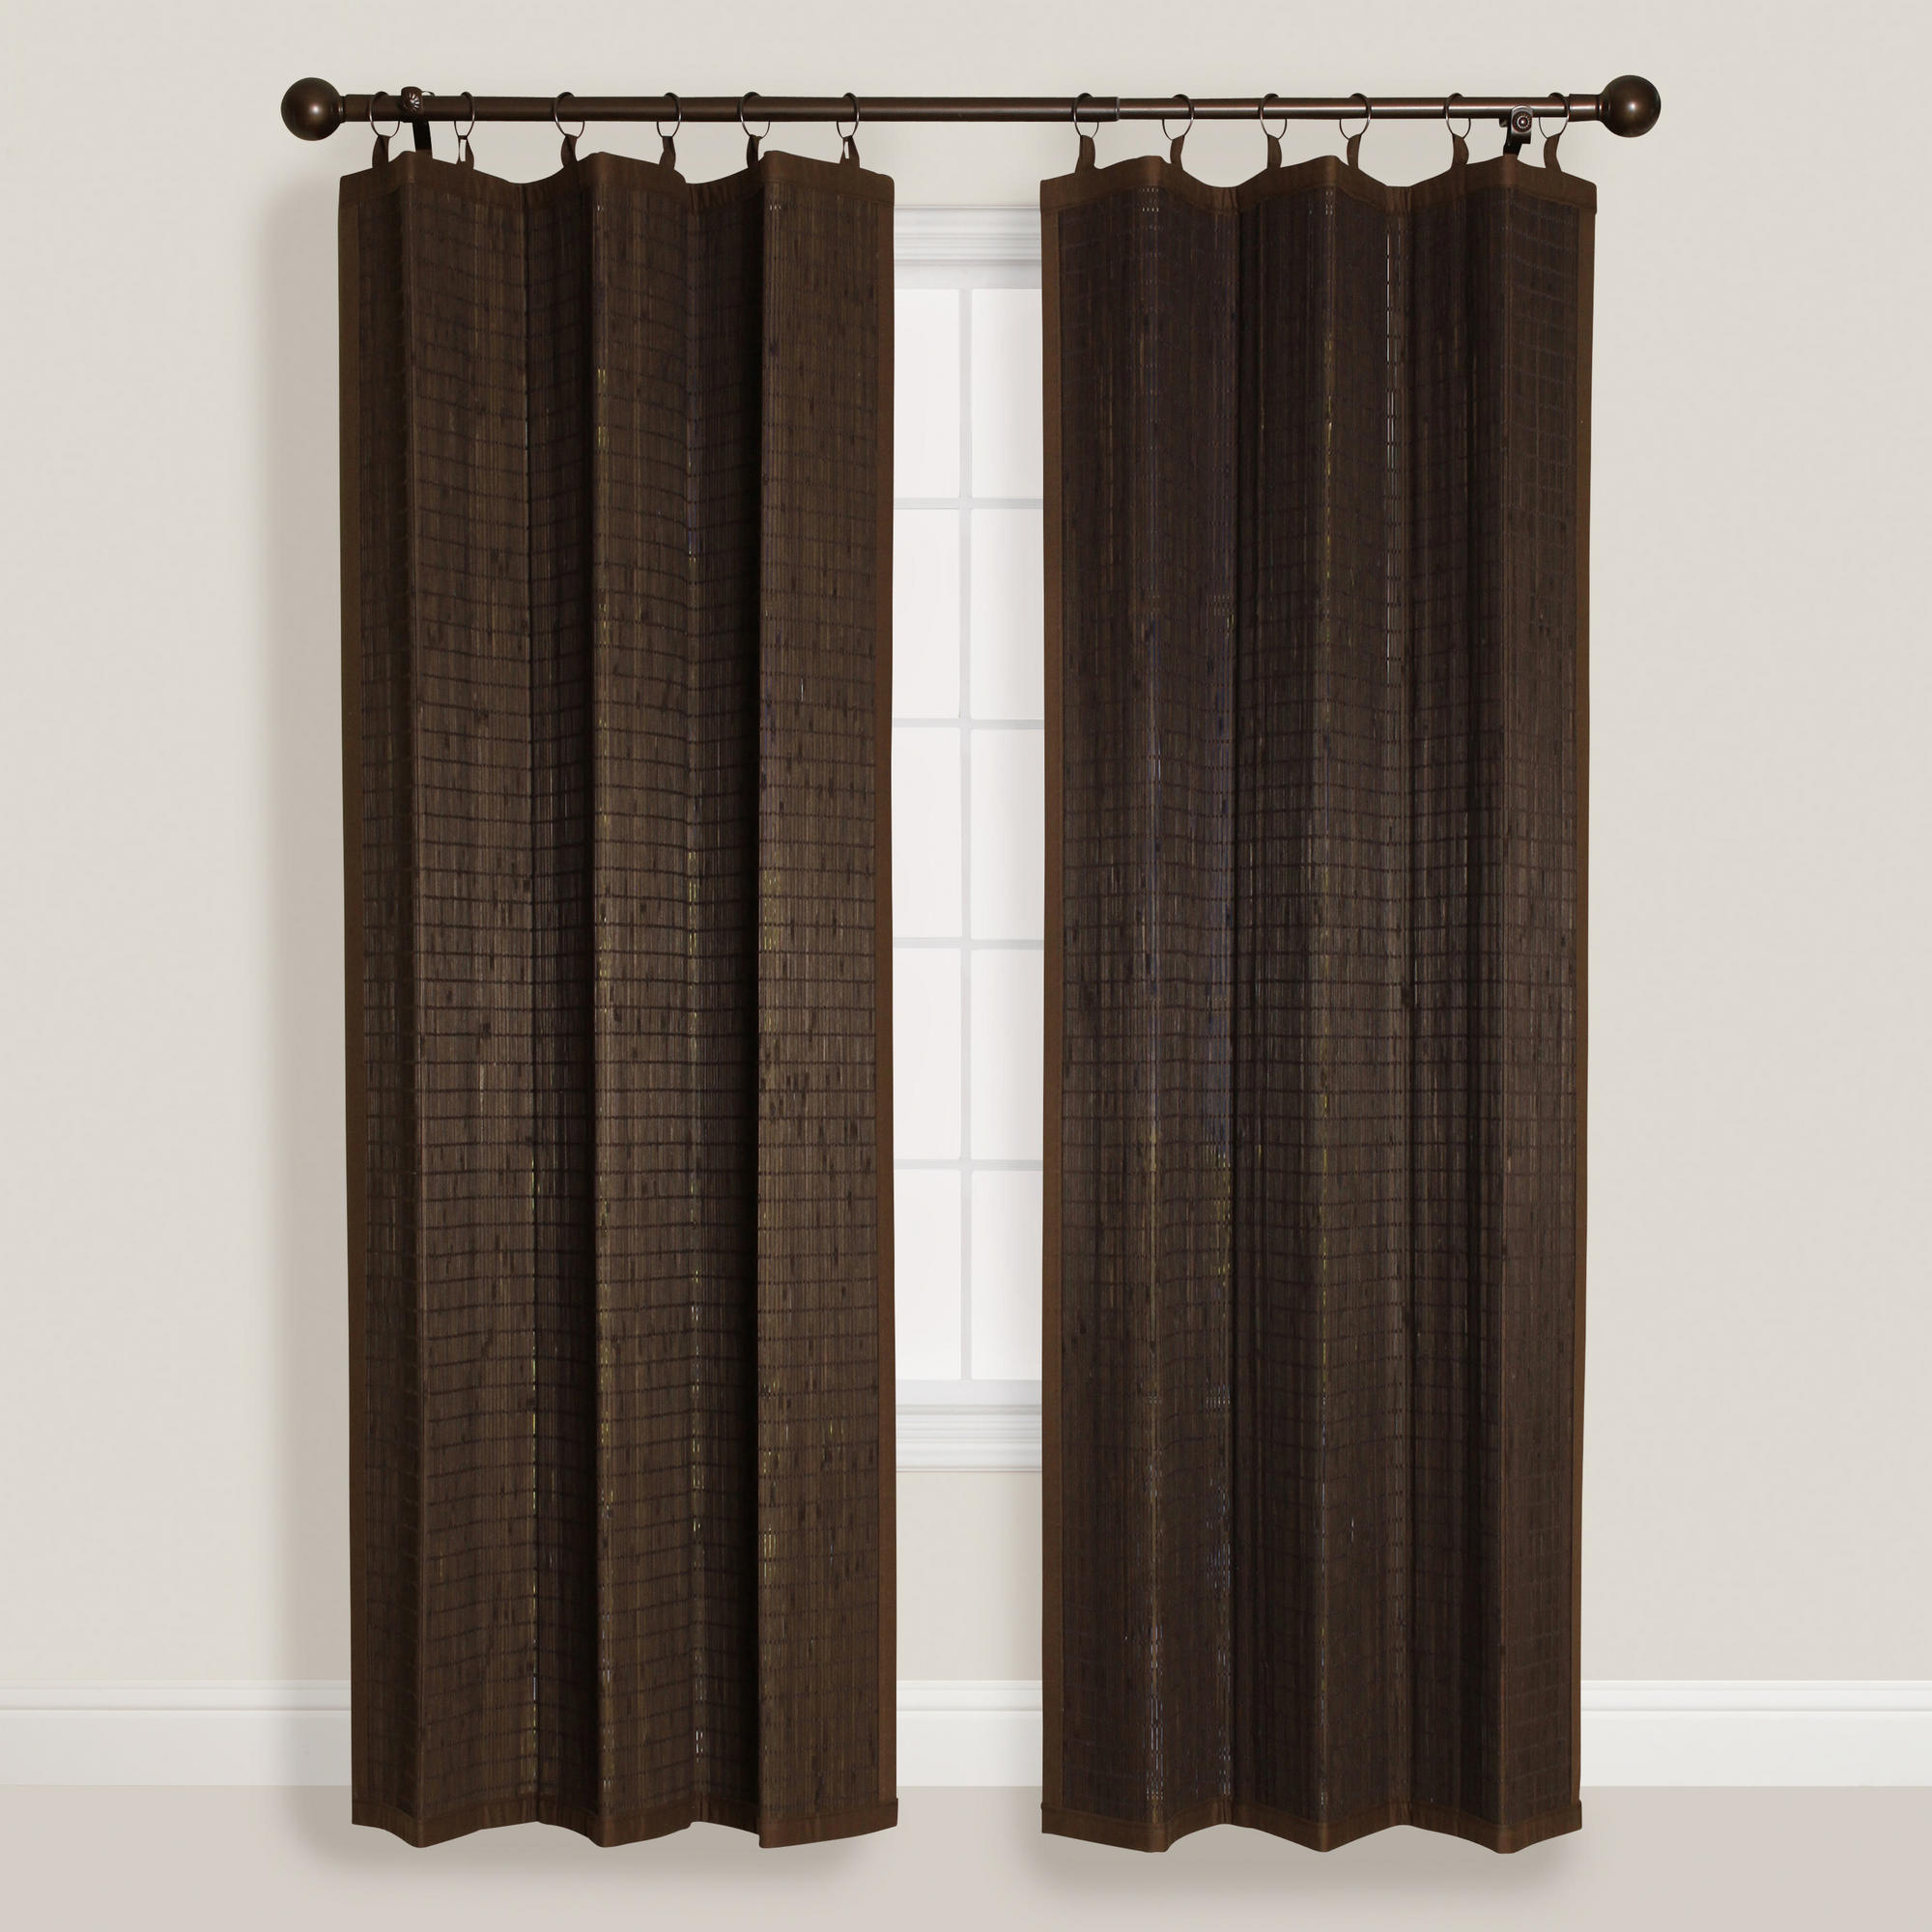 for back room faux gorilla of tables lowes rods pinch hooks pleat command size flared making best drapes lined how hang beautiful silk marquee blind on tab curtain coffee rod living panels to traverse full curtains outdoor